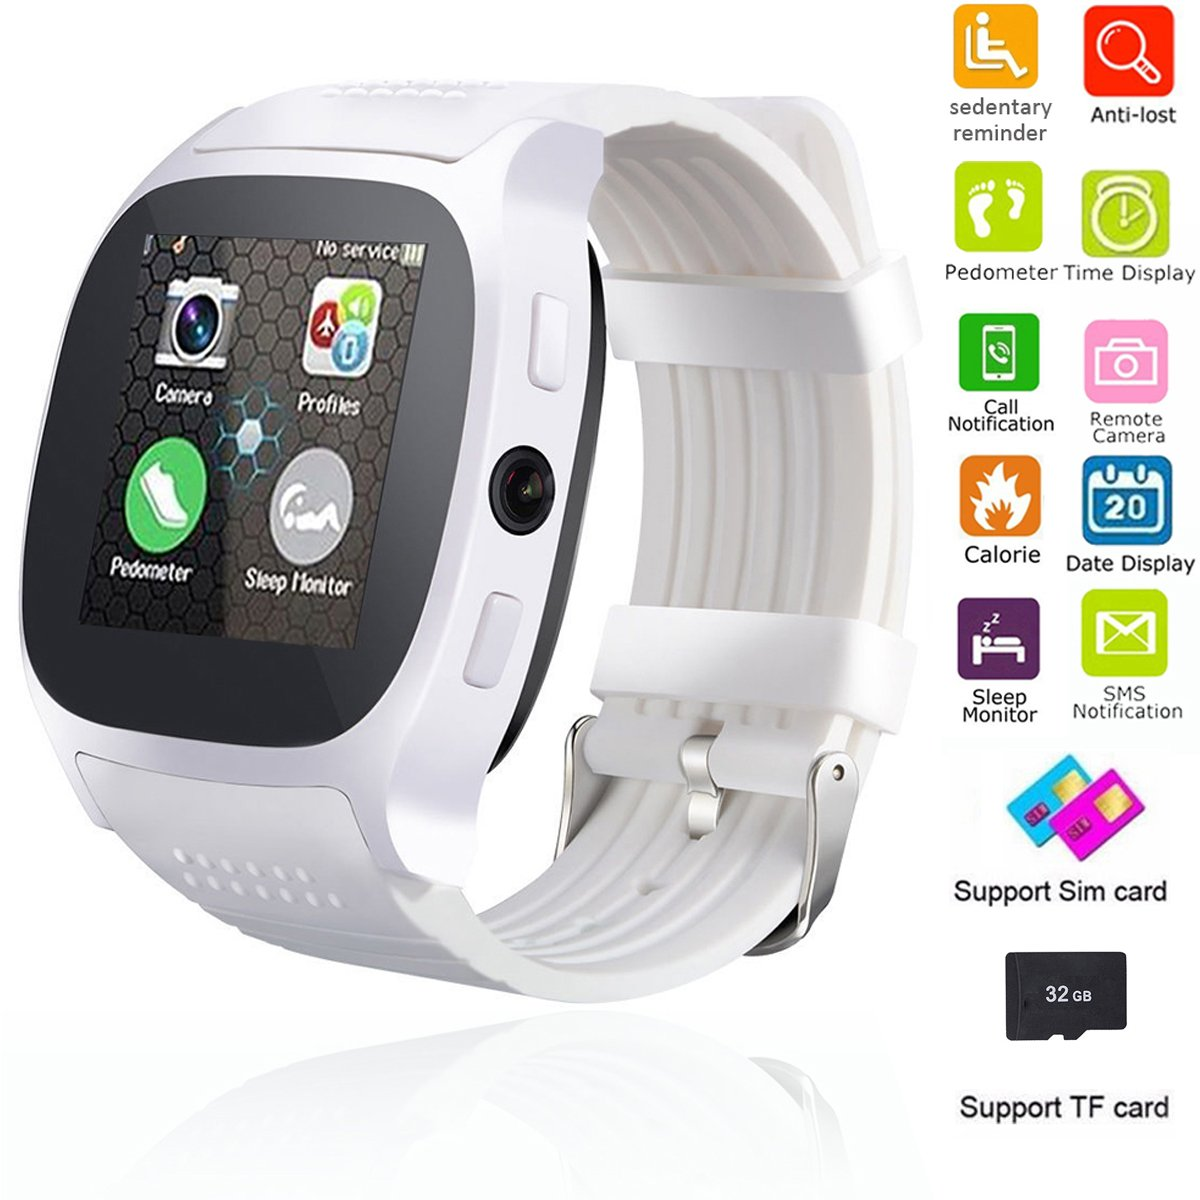 Smart Watch Bluetooth Unlocked Wristwatch Cell Phone With Camera SIM TF Card Slot Sport Fitness Tracker Sweatproof for Men Women Boys Girls for Android Smartphones Samsung Motorola LG HTC (White) by Teastar